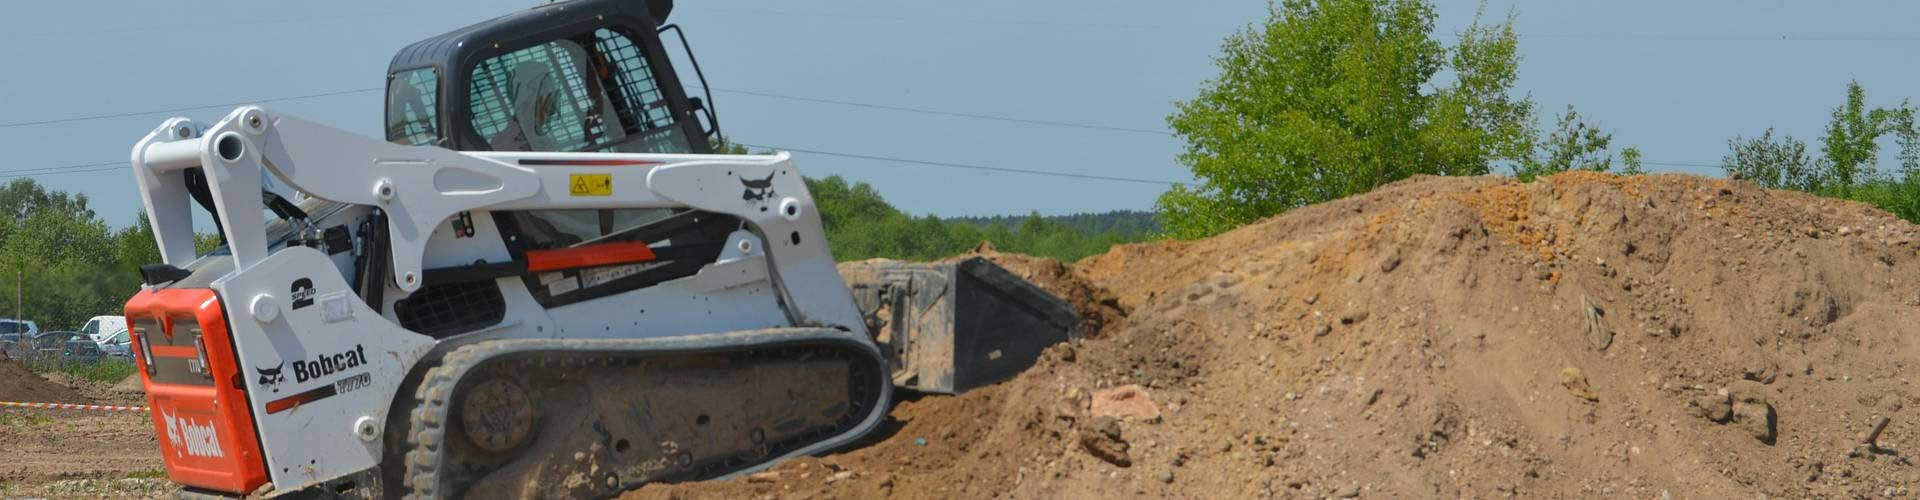 Skid Steer Rentals in Blount County